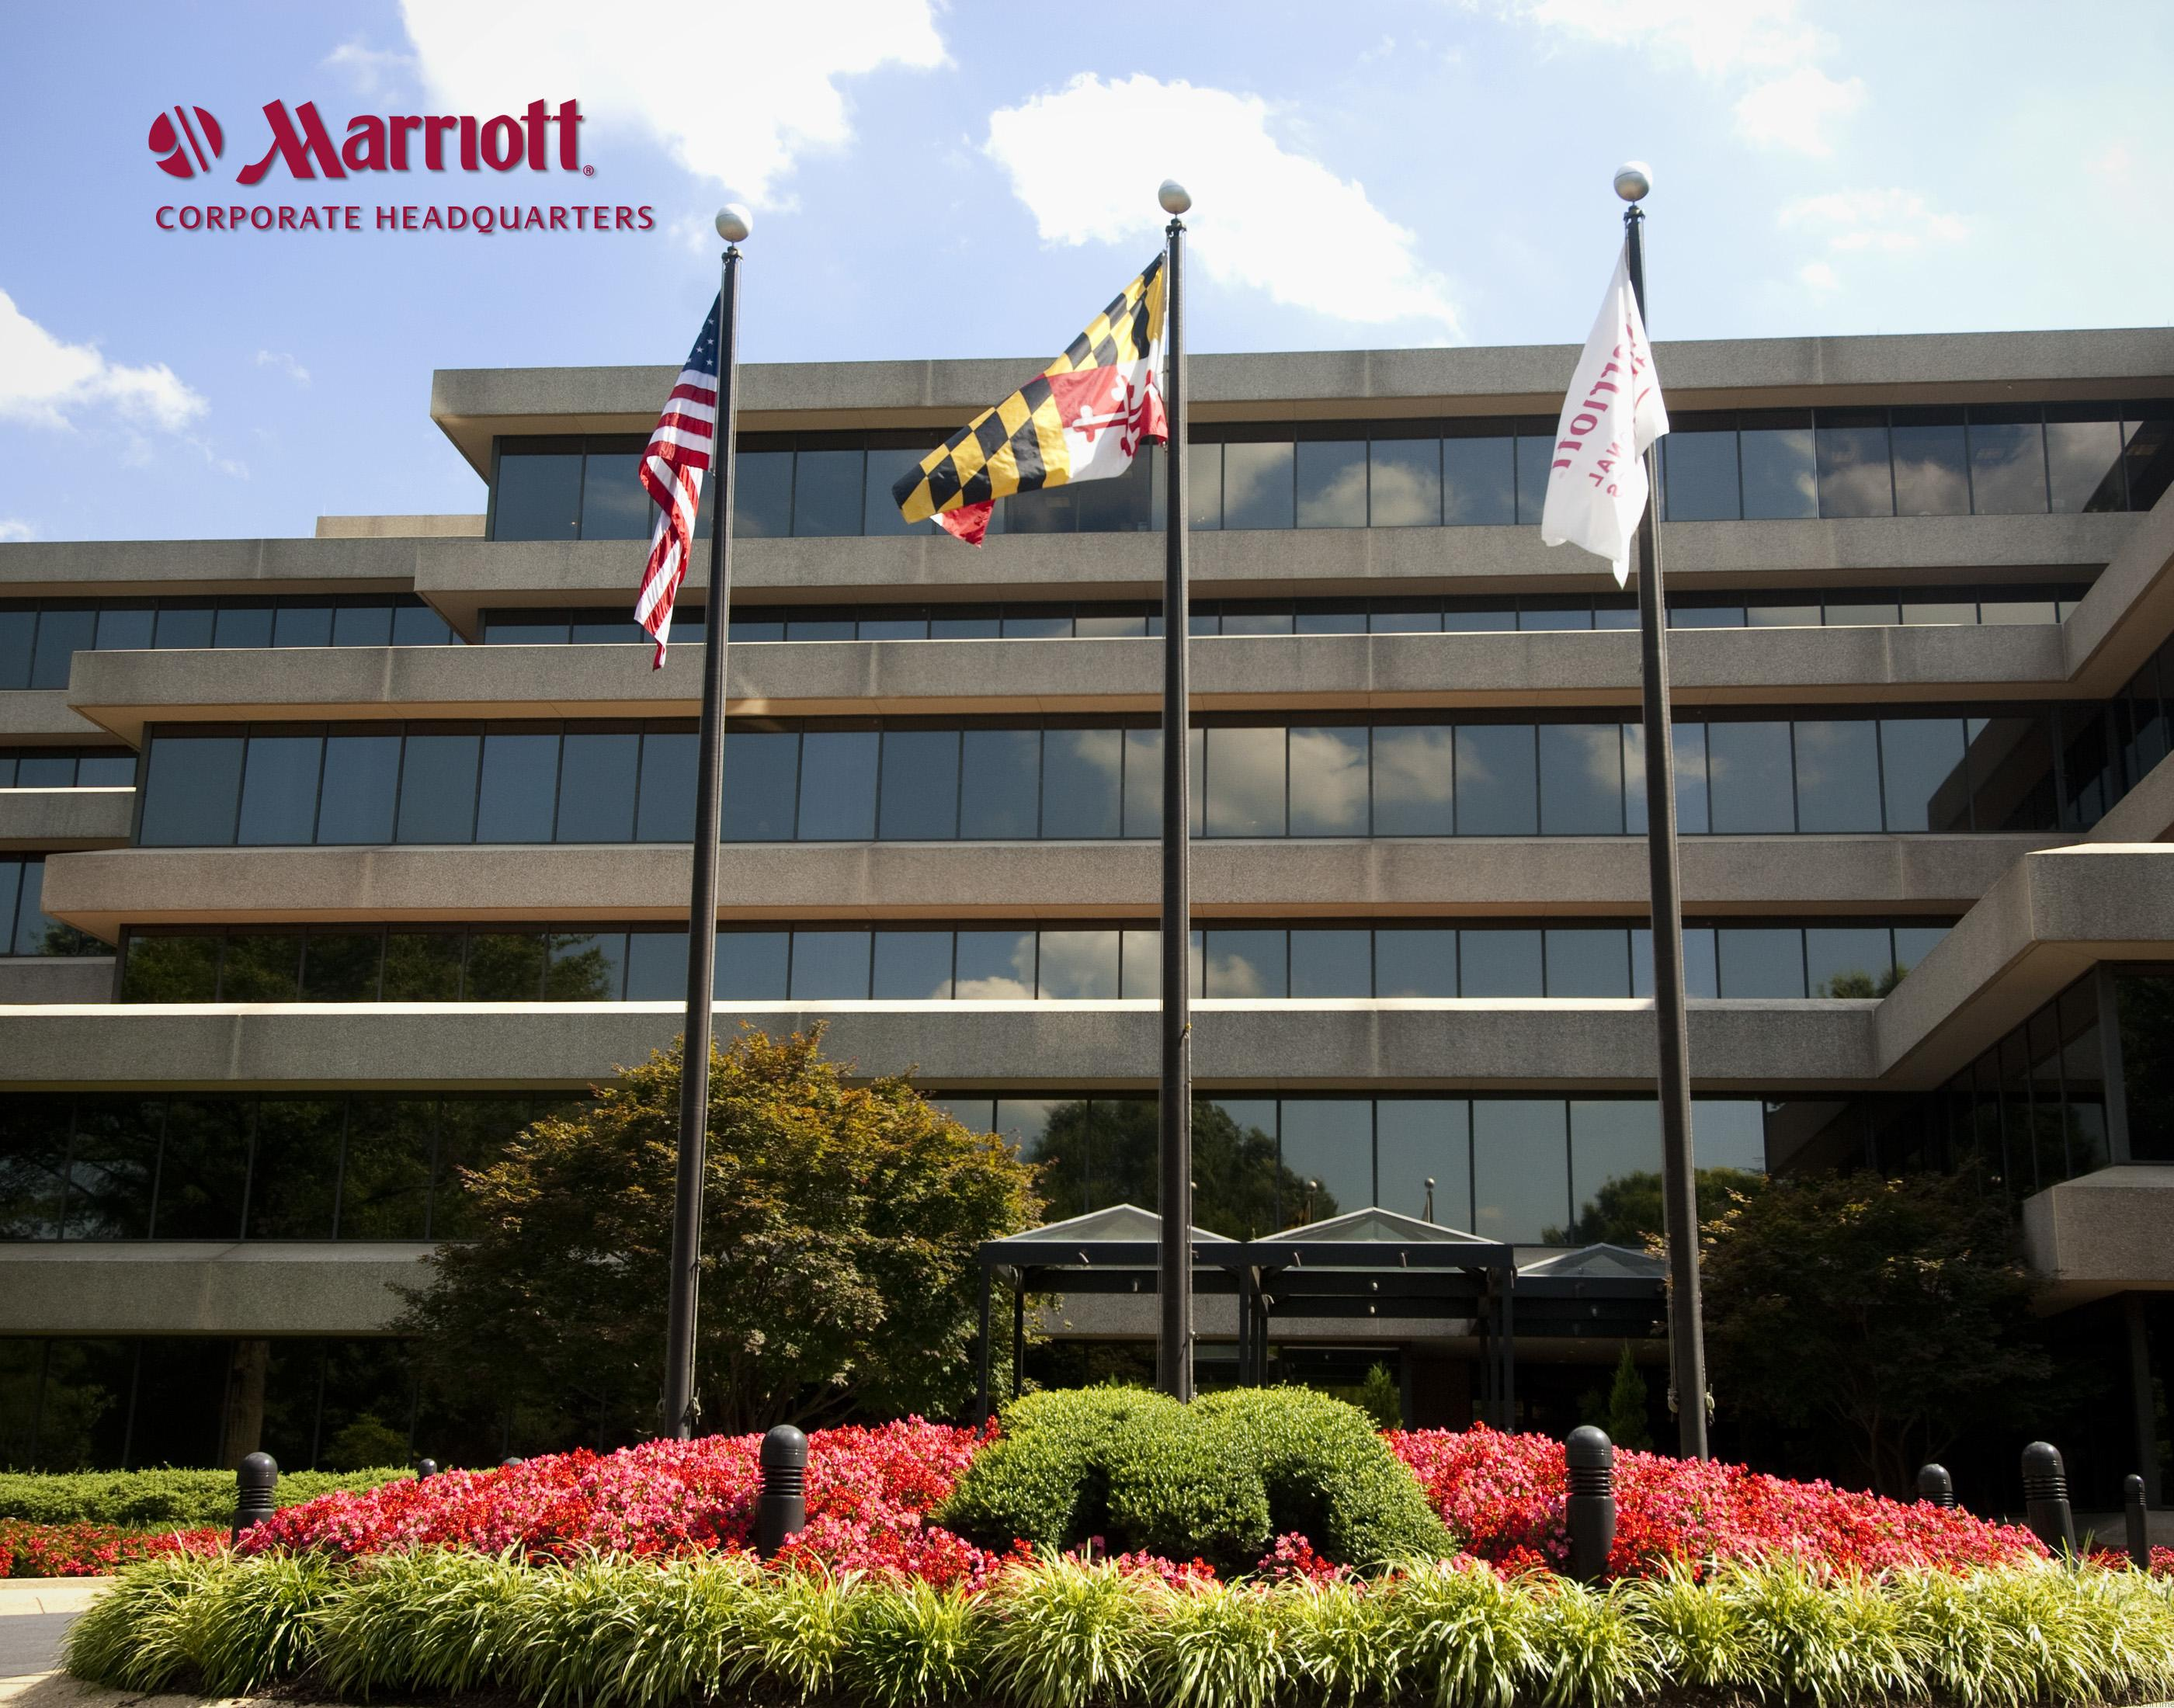 Marriott International – Caribe y Latinoamérica amplía su PORTAFOLIO de marcas